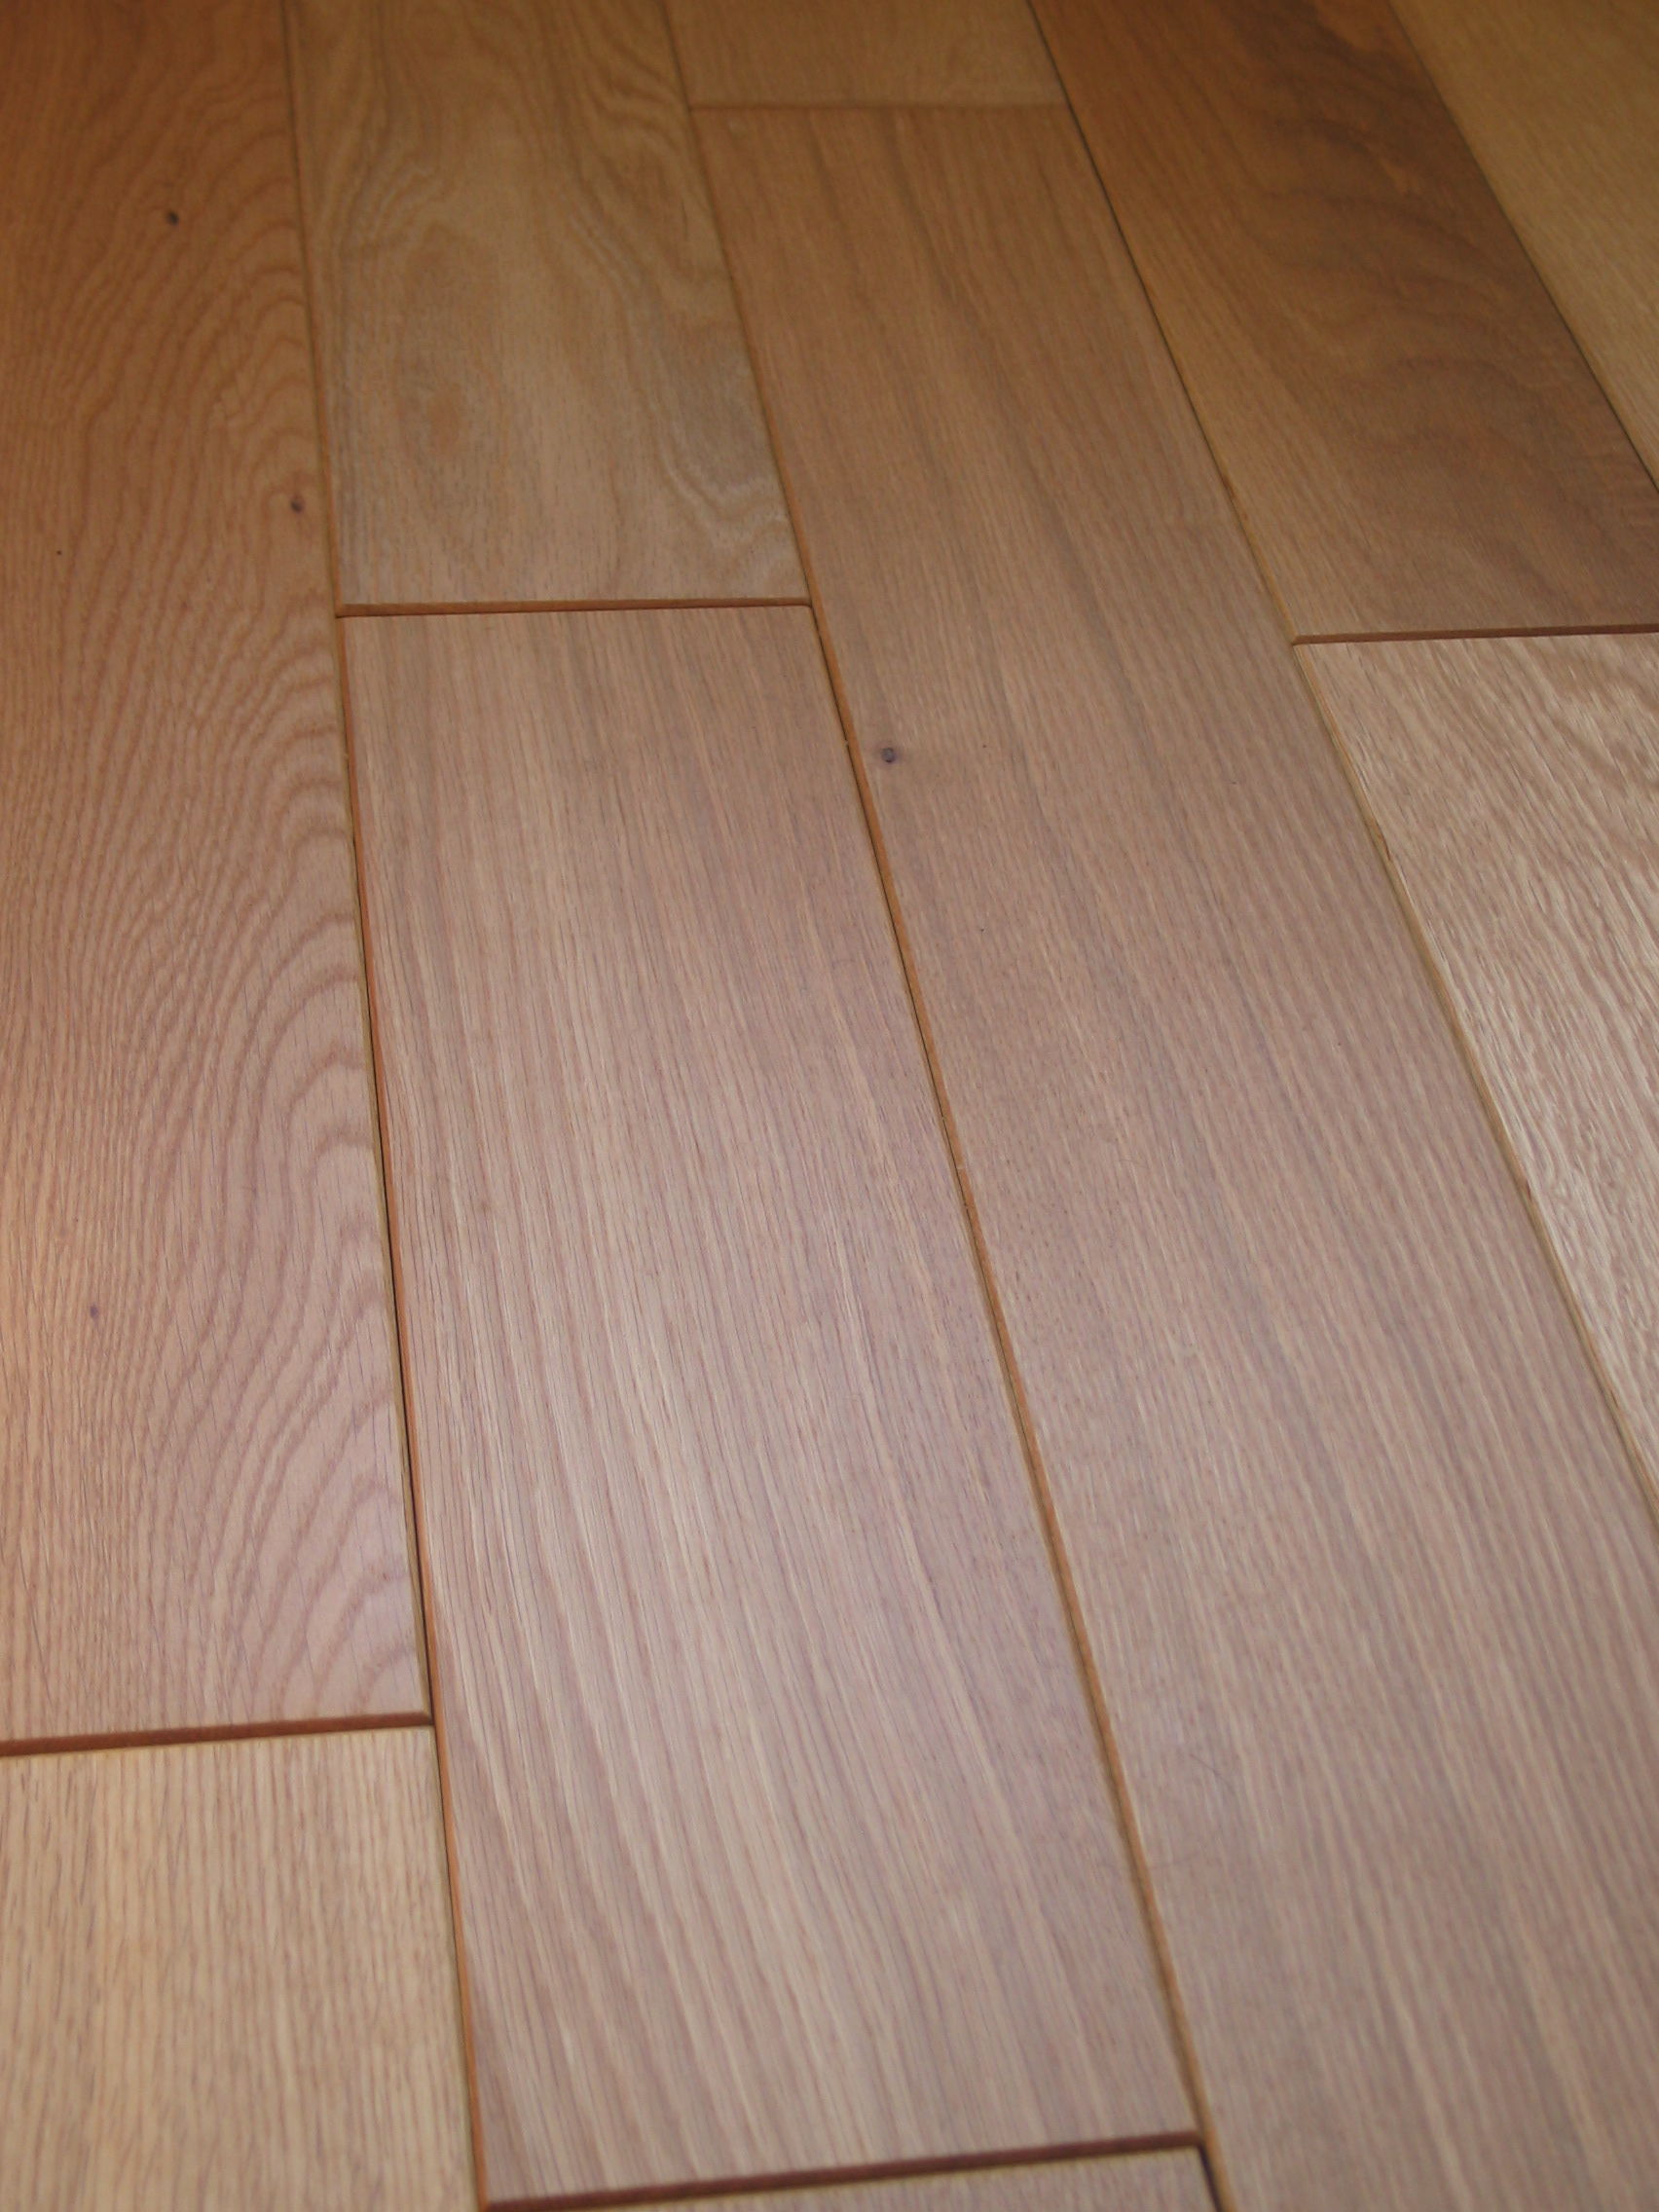 Dimension Lame De Parquet File Parquet Massif Chêne Rustique Chanfreiné Jpg Wikipedia